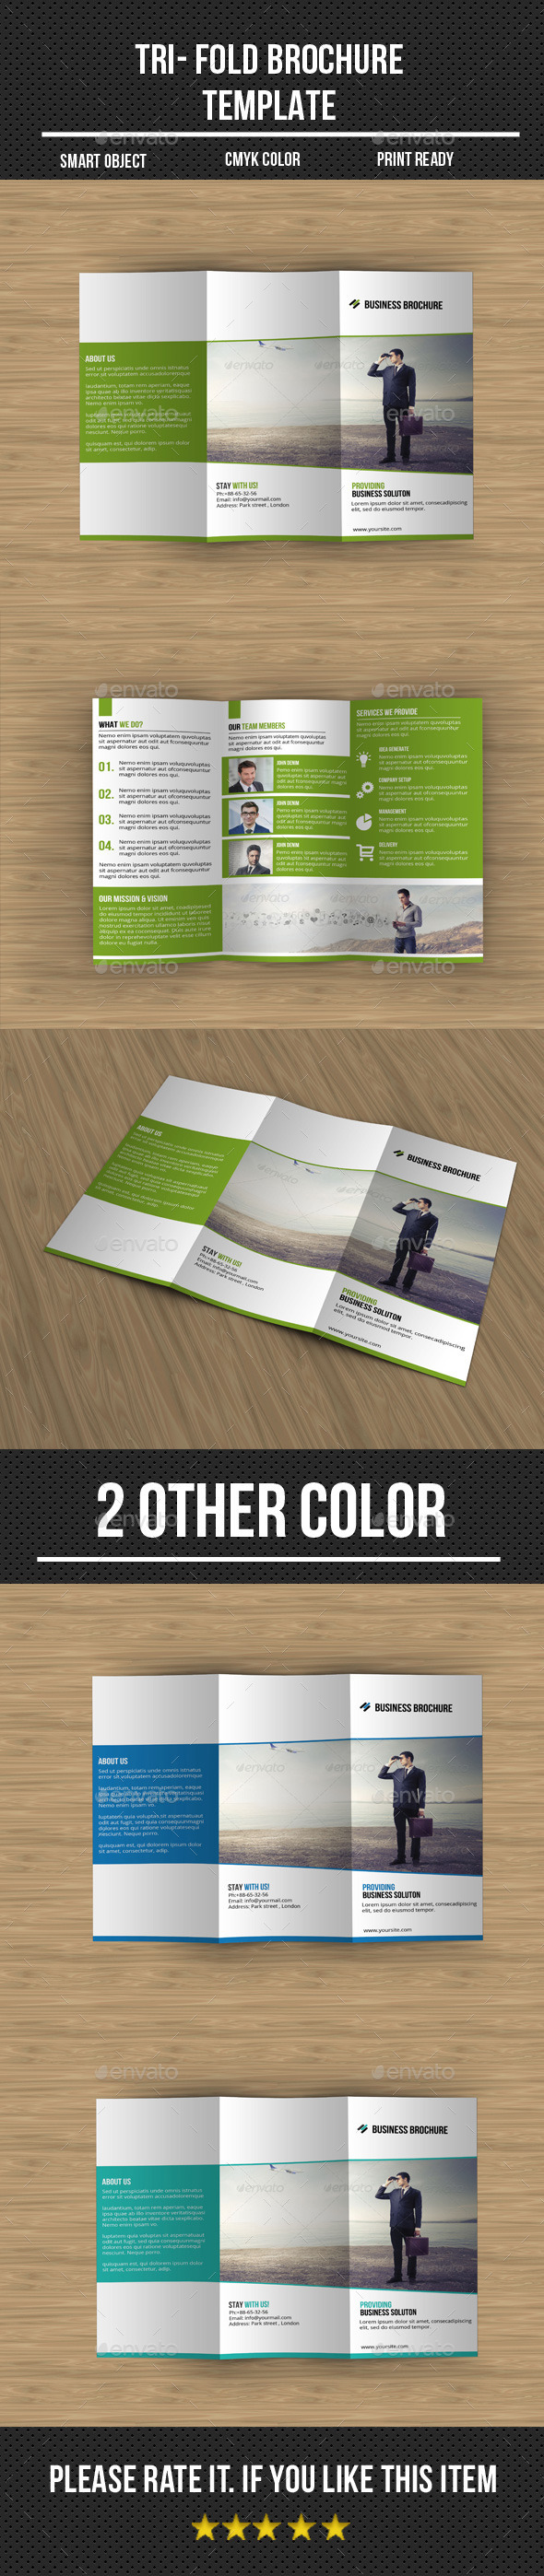 GraphicRiver Tri Fold Corporate Brochure 10873909